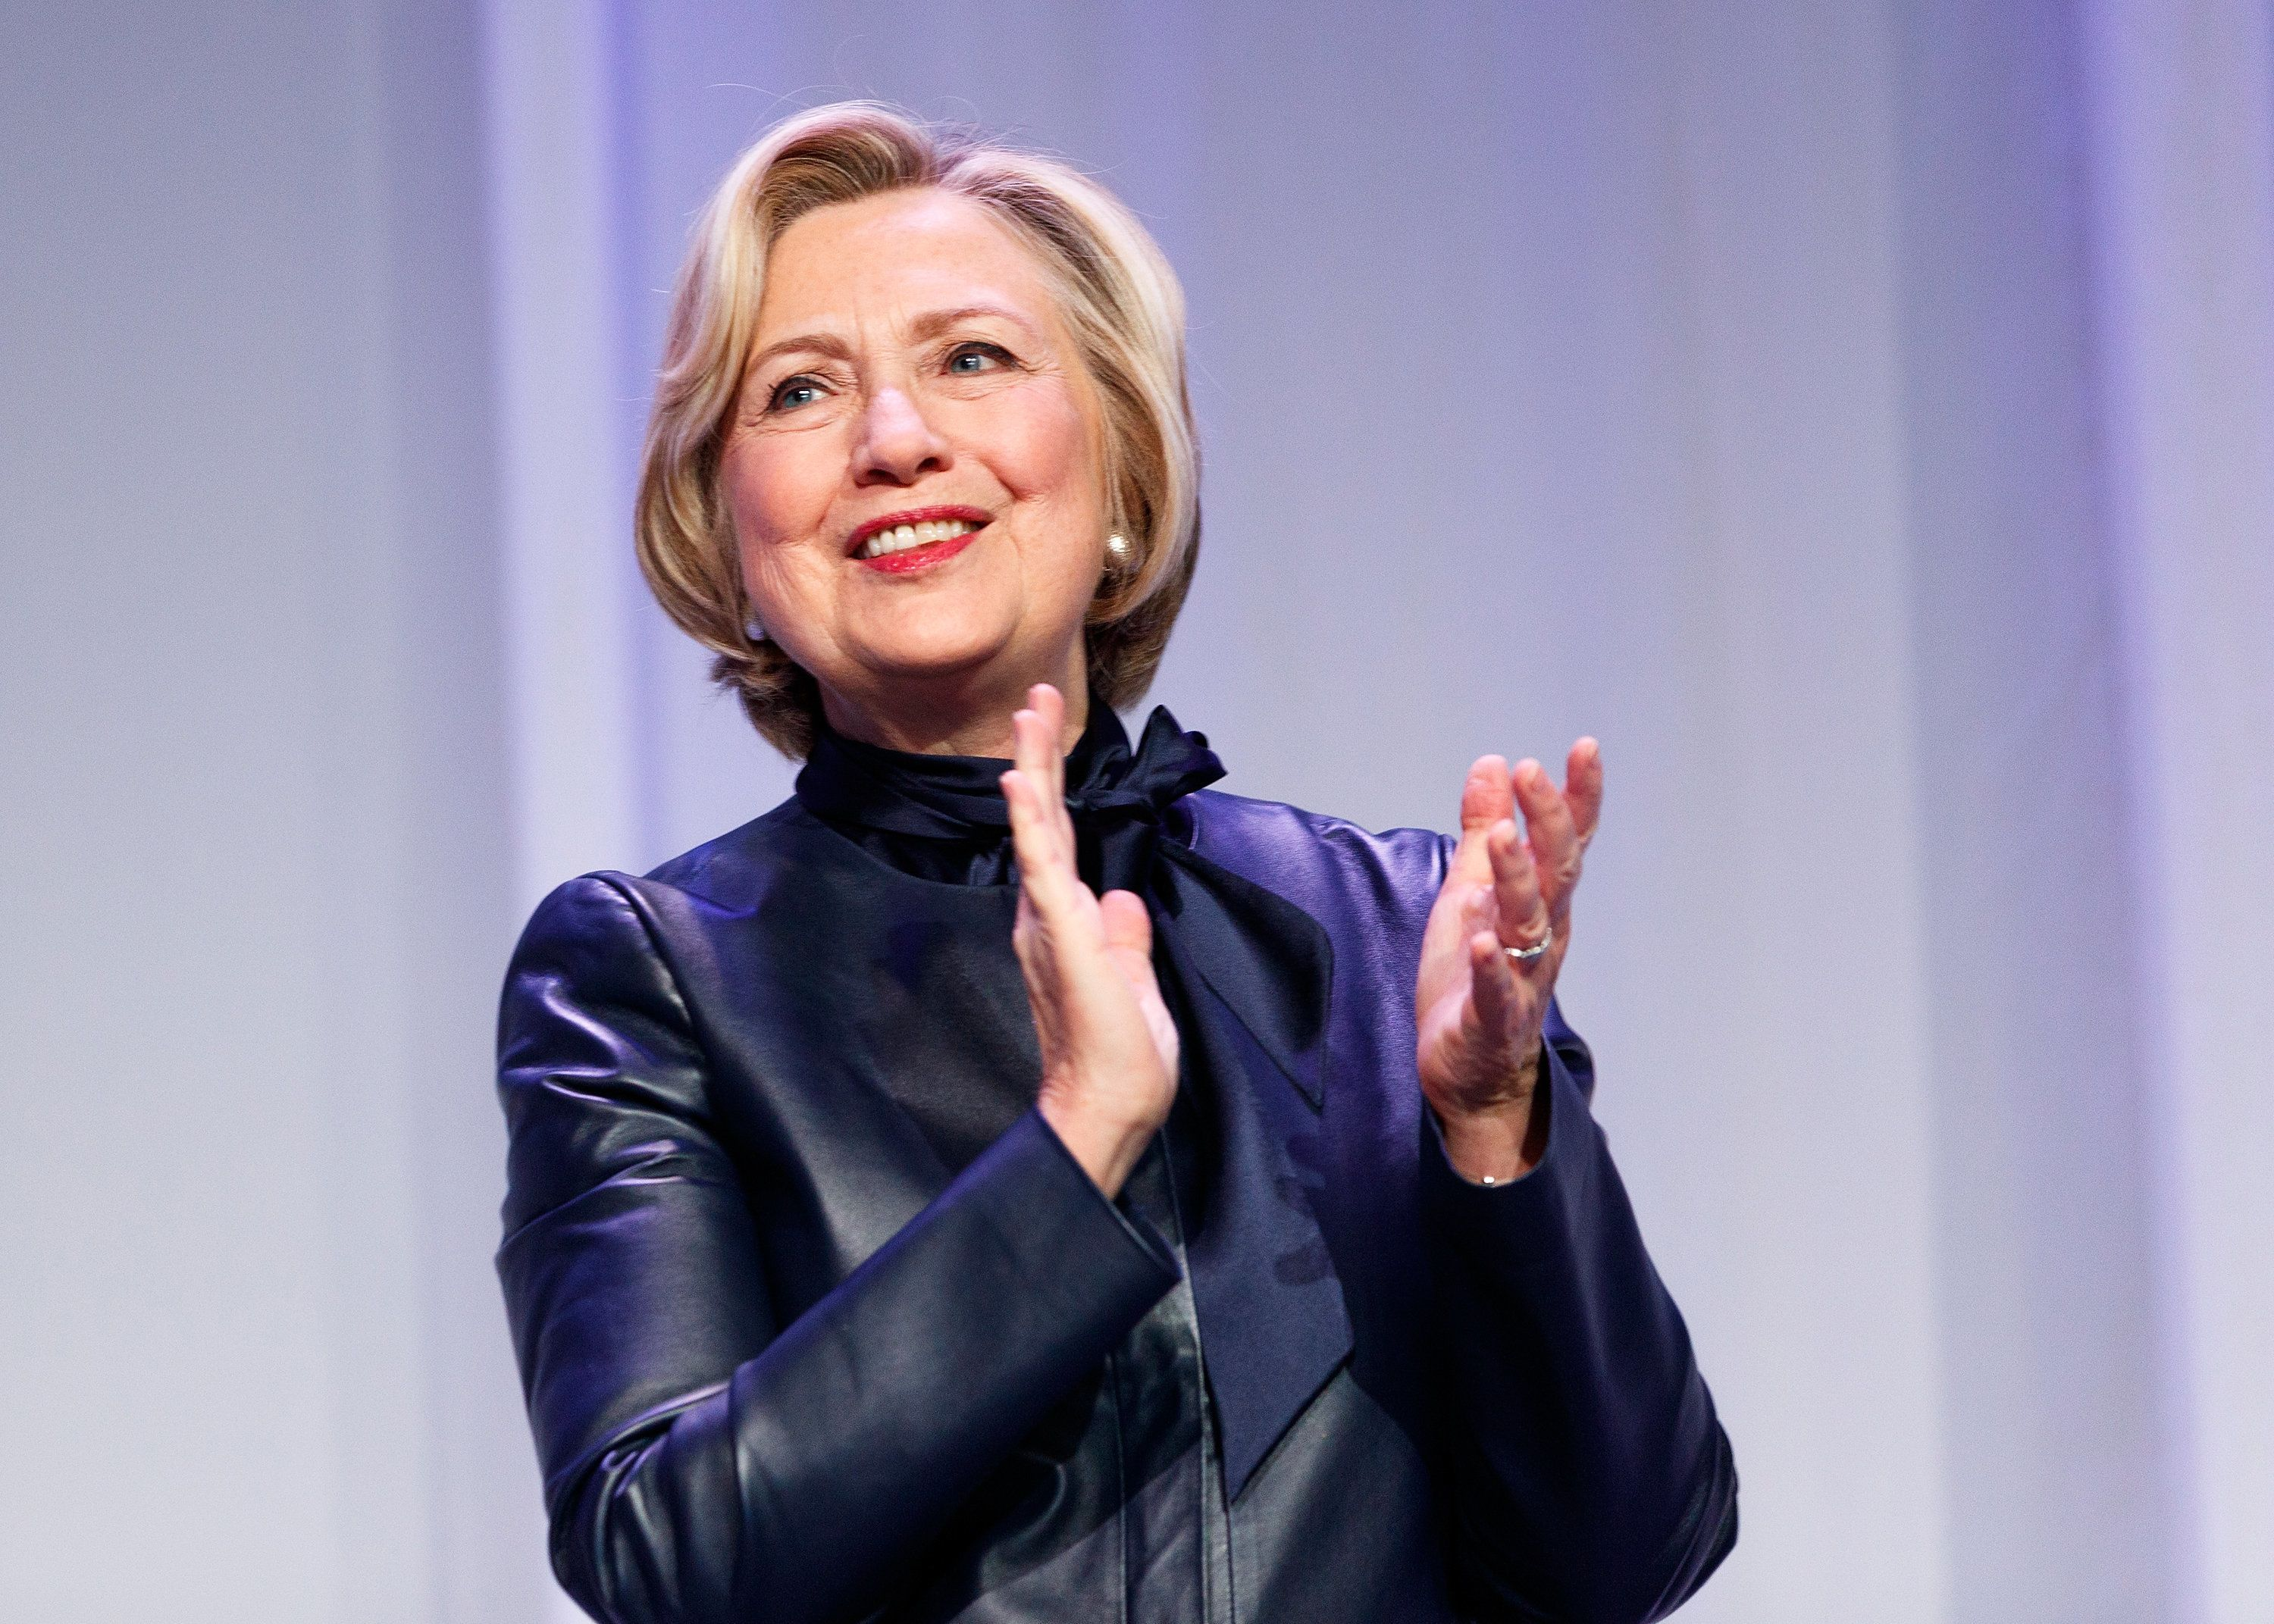 VANCOUVER, BC - DECEMBER 13:  Former U.S. Secretary of State Hillary Clinton speaks onstage during the tour for her new book 'What Happened' at Vancouver Convention Centre on December 13, 2017 in Vancouver, Canada.  (Photo by Andrew Chin/Getty Images)